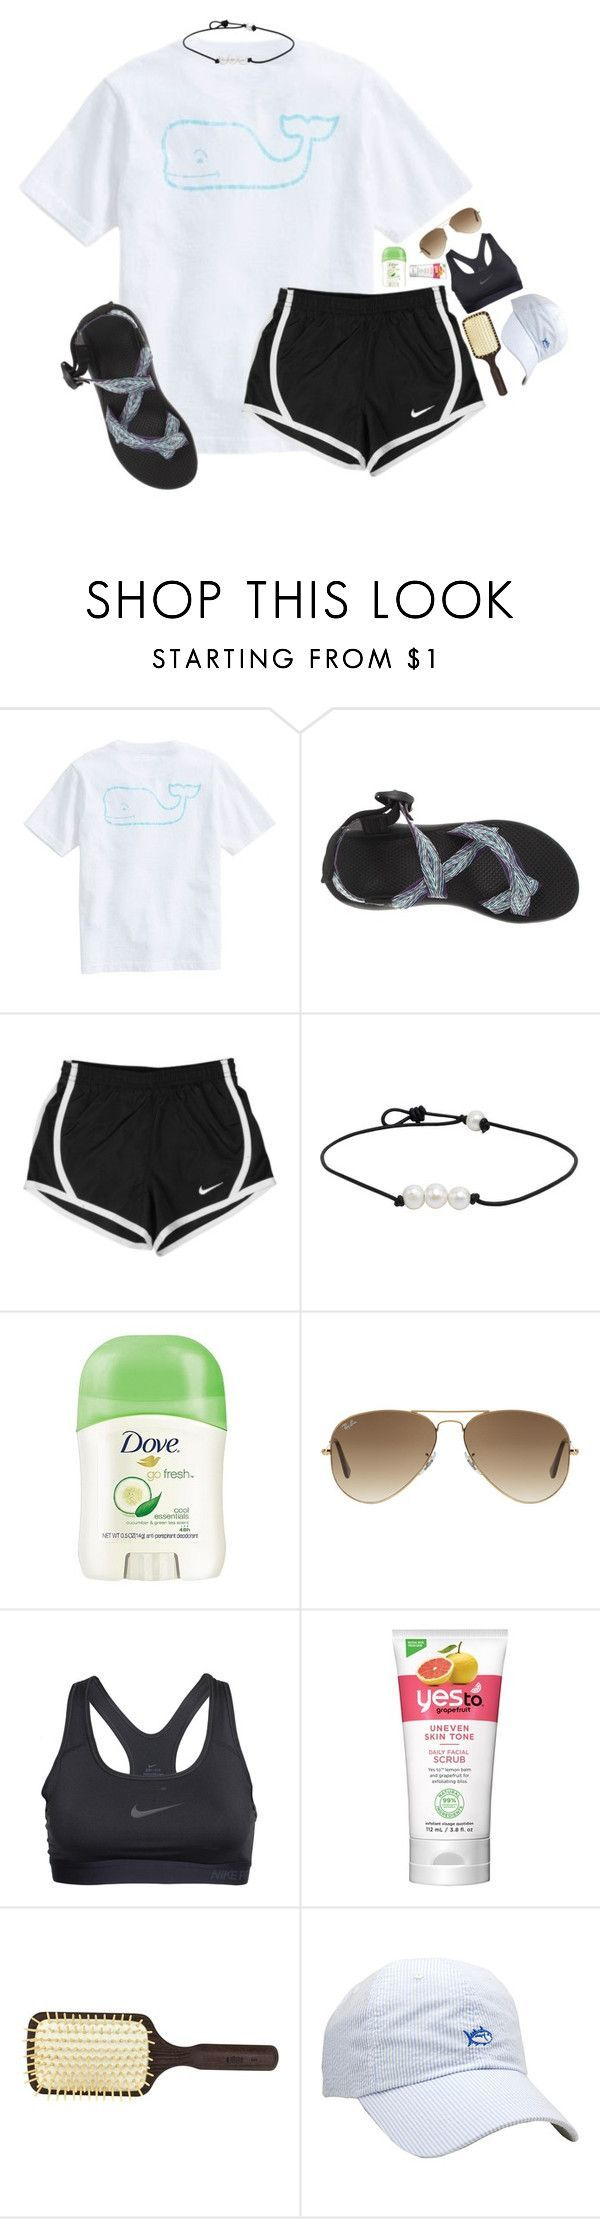 """""""GN y'all! Comment some nice things for me to wake up to!"""" by lydia-hh ❤ liked on Polyvore featuring Vineyard Vines, Chaco, NIKE, Dove, Ray-Ban, Ibiza Hair and Southern Tide"""